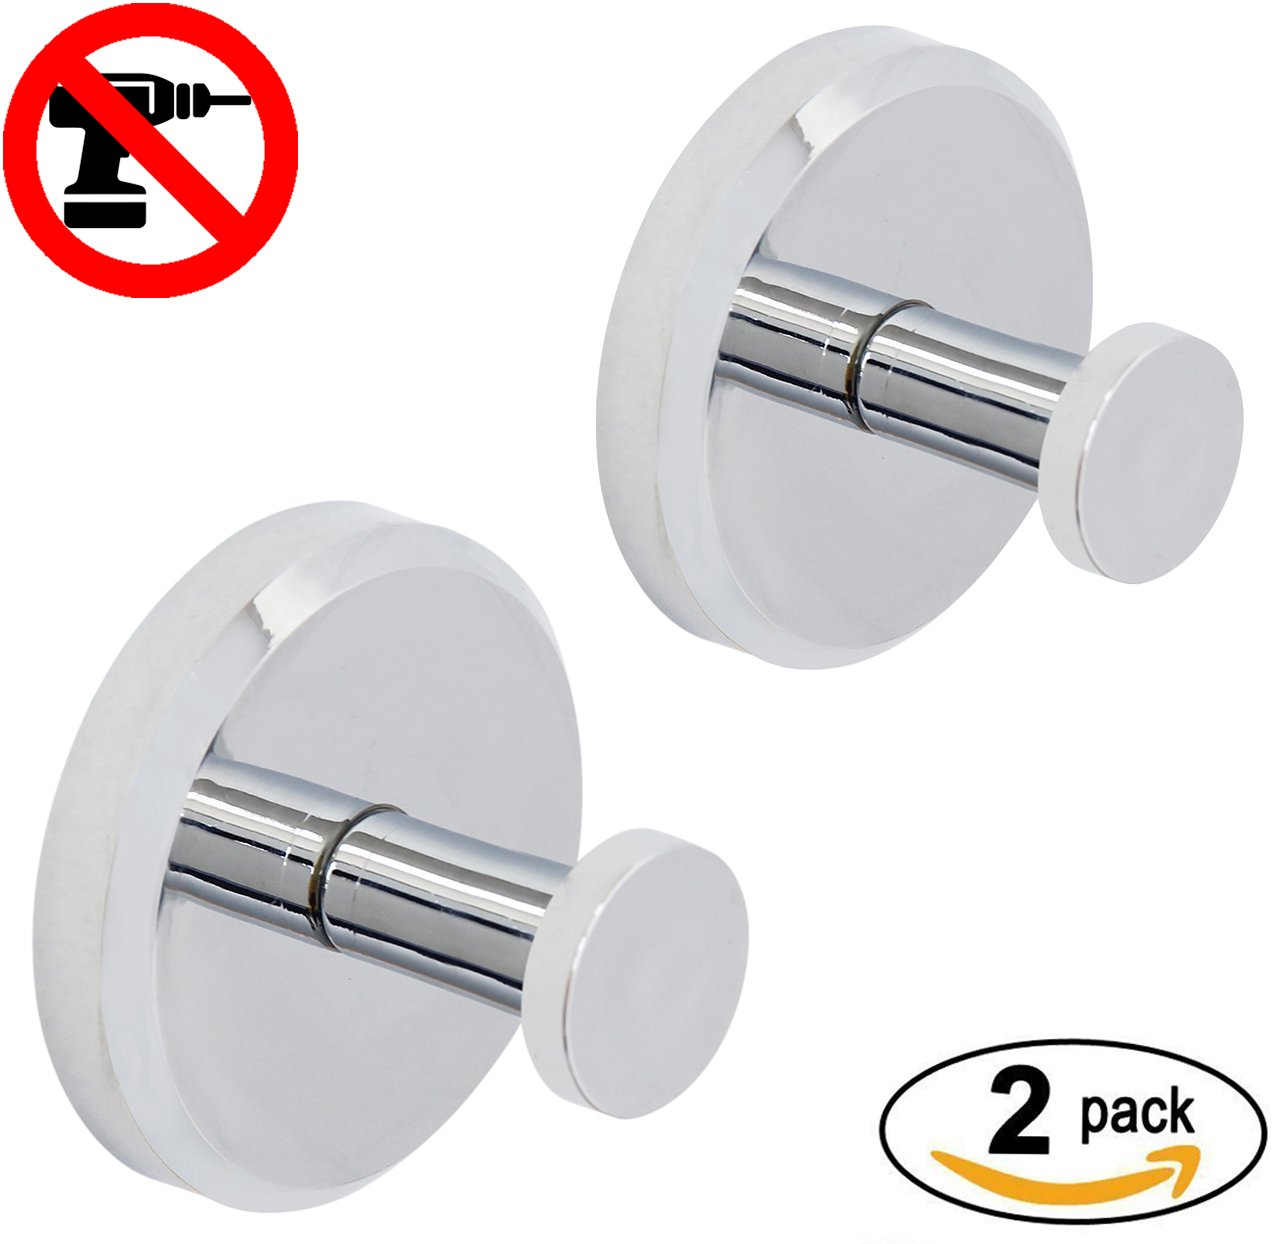 HOME SO Bathroom Hook with Suction Cup Holder - Removable Shower ...